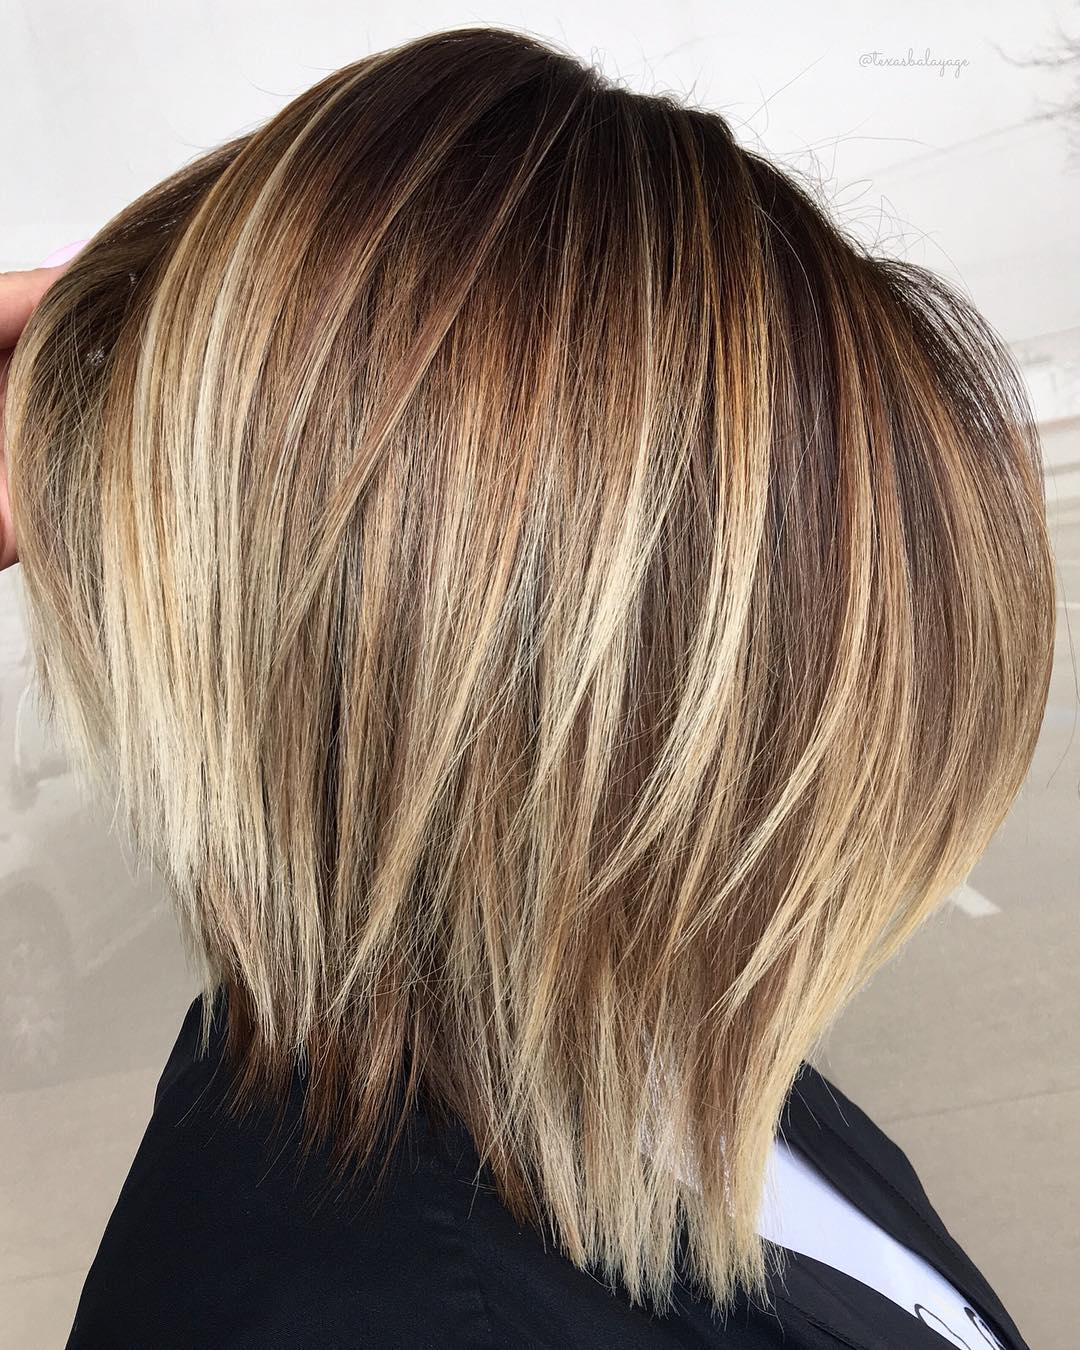 Straight Bronde A-Line Bob Cut with Layers